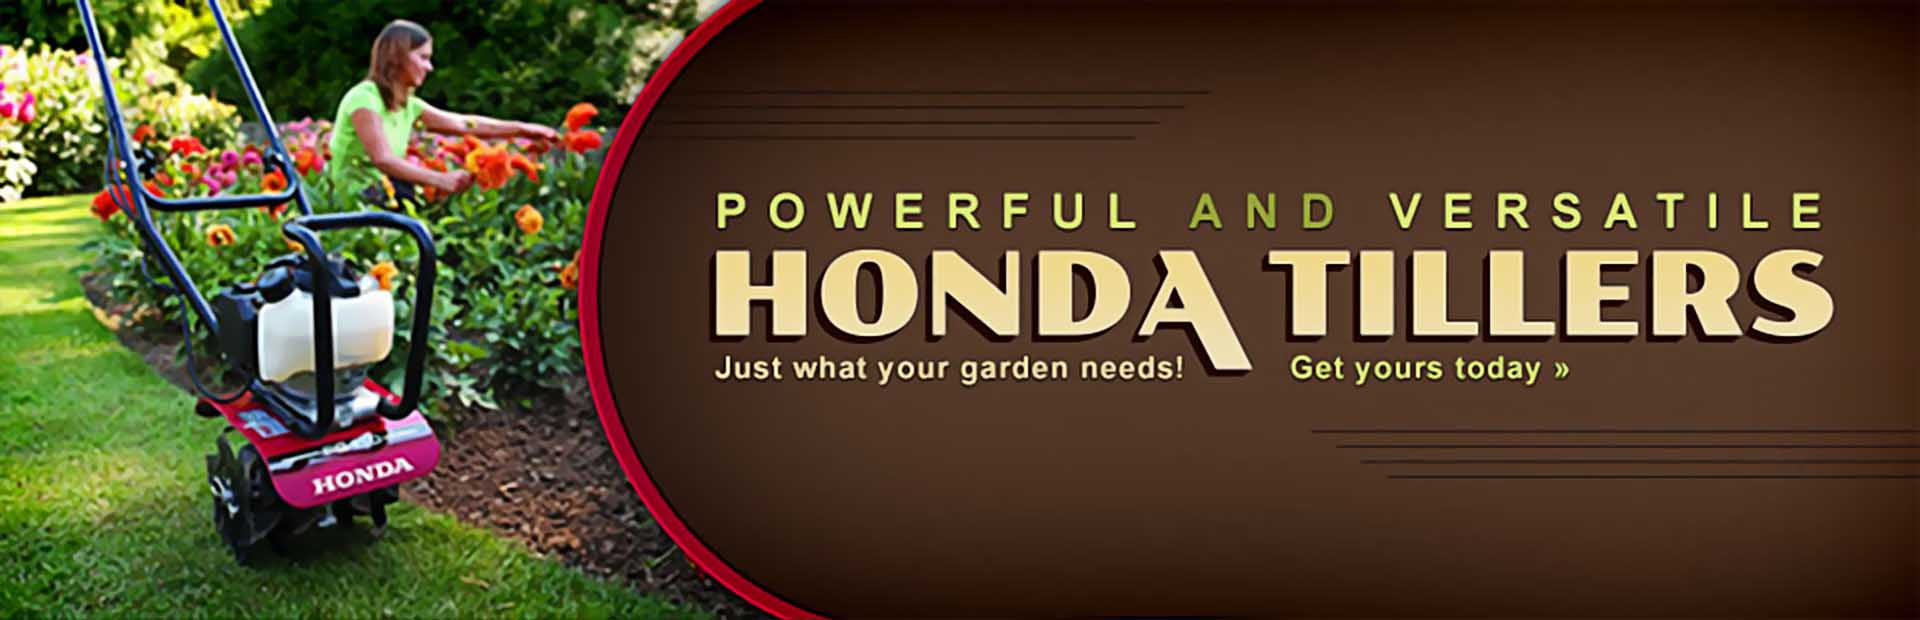 Click here to view Honda tillers.